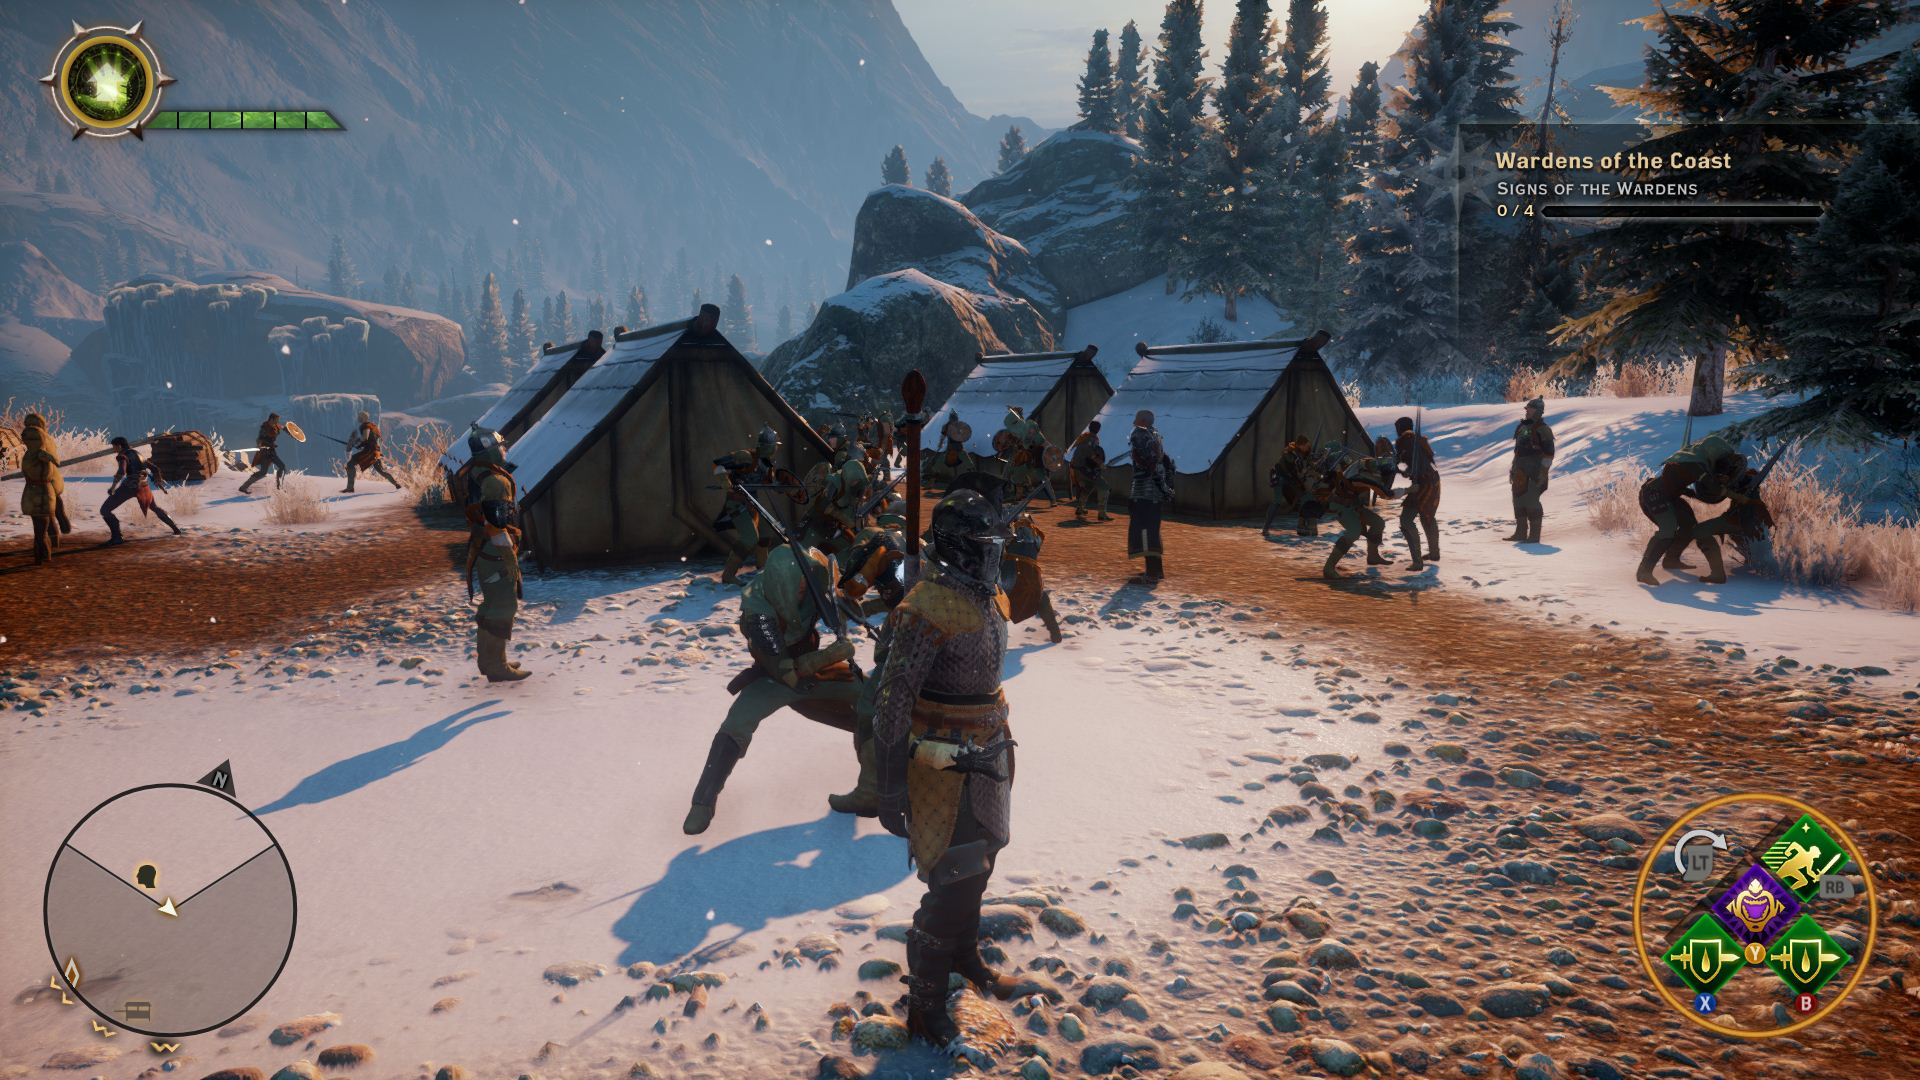 Skyrim Wallpaper Fall Dragon Age Inquisition Review